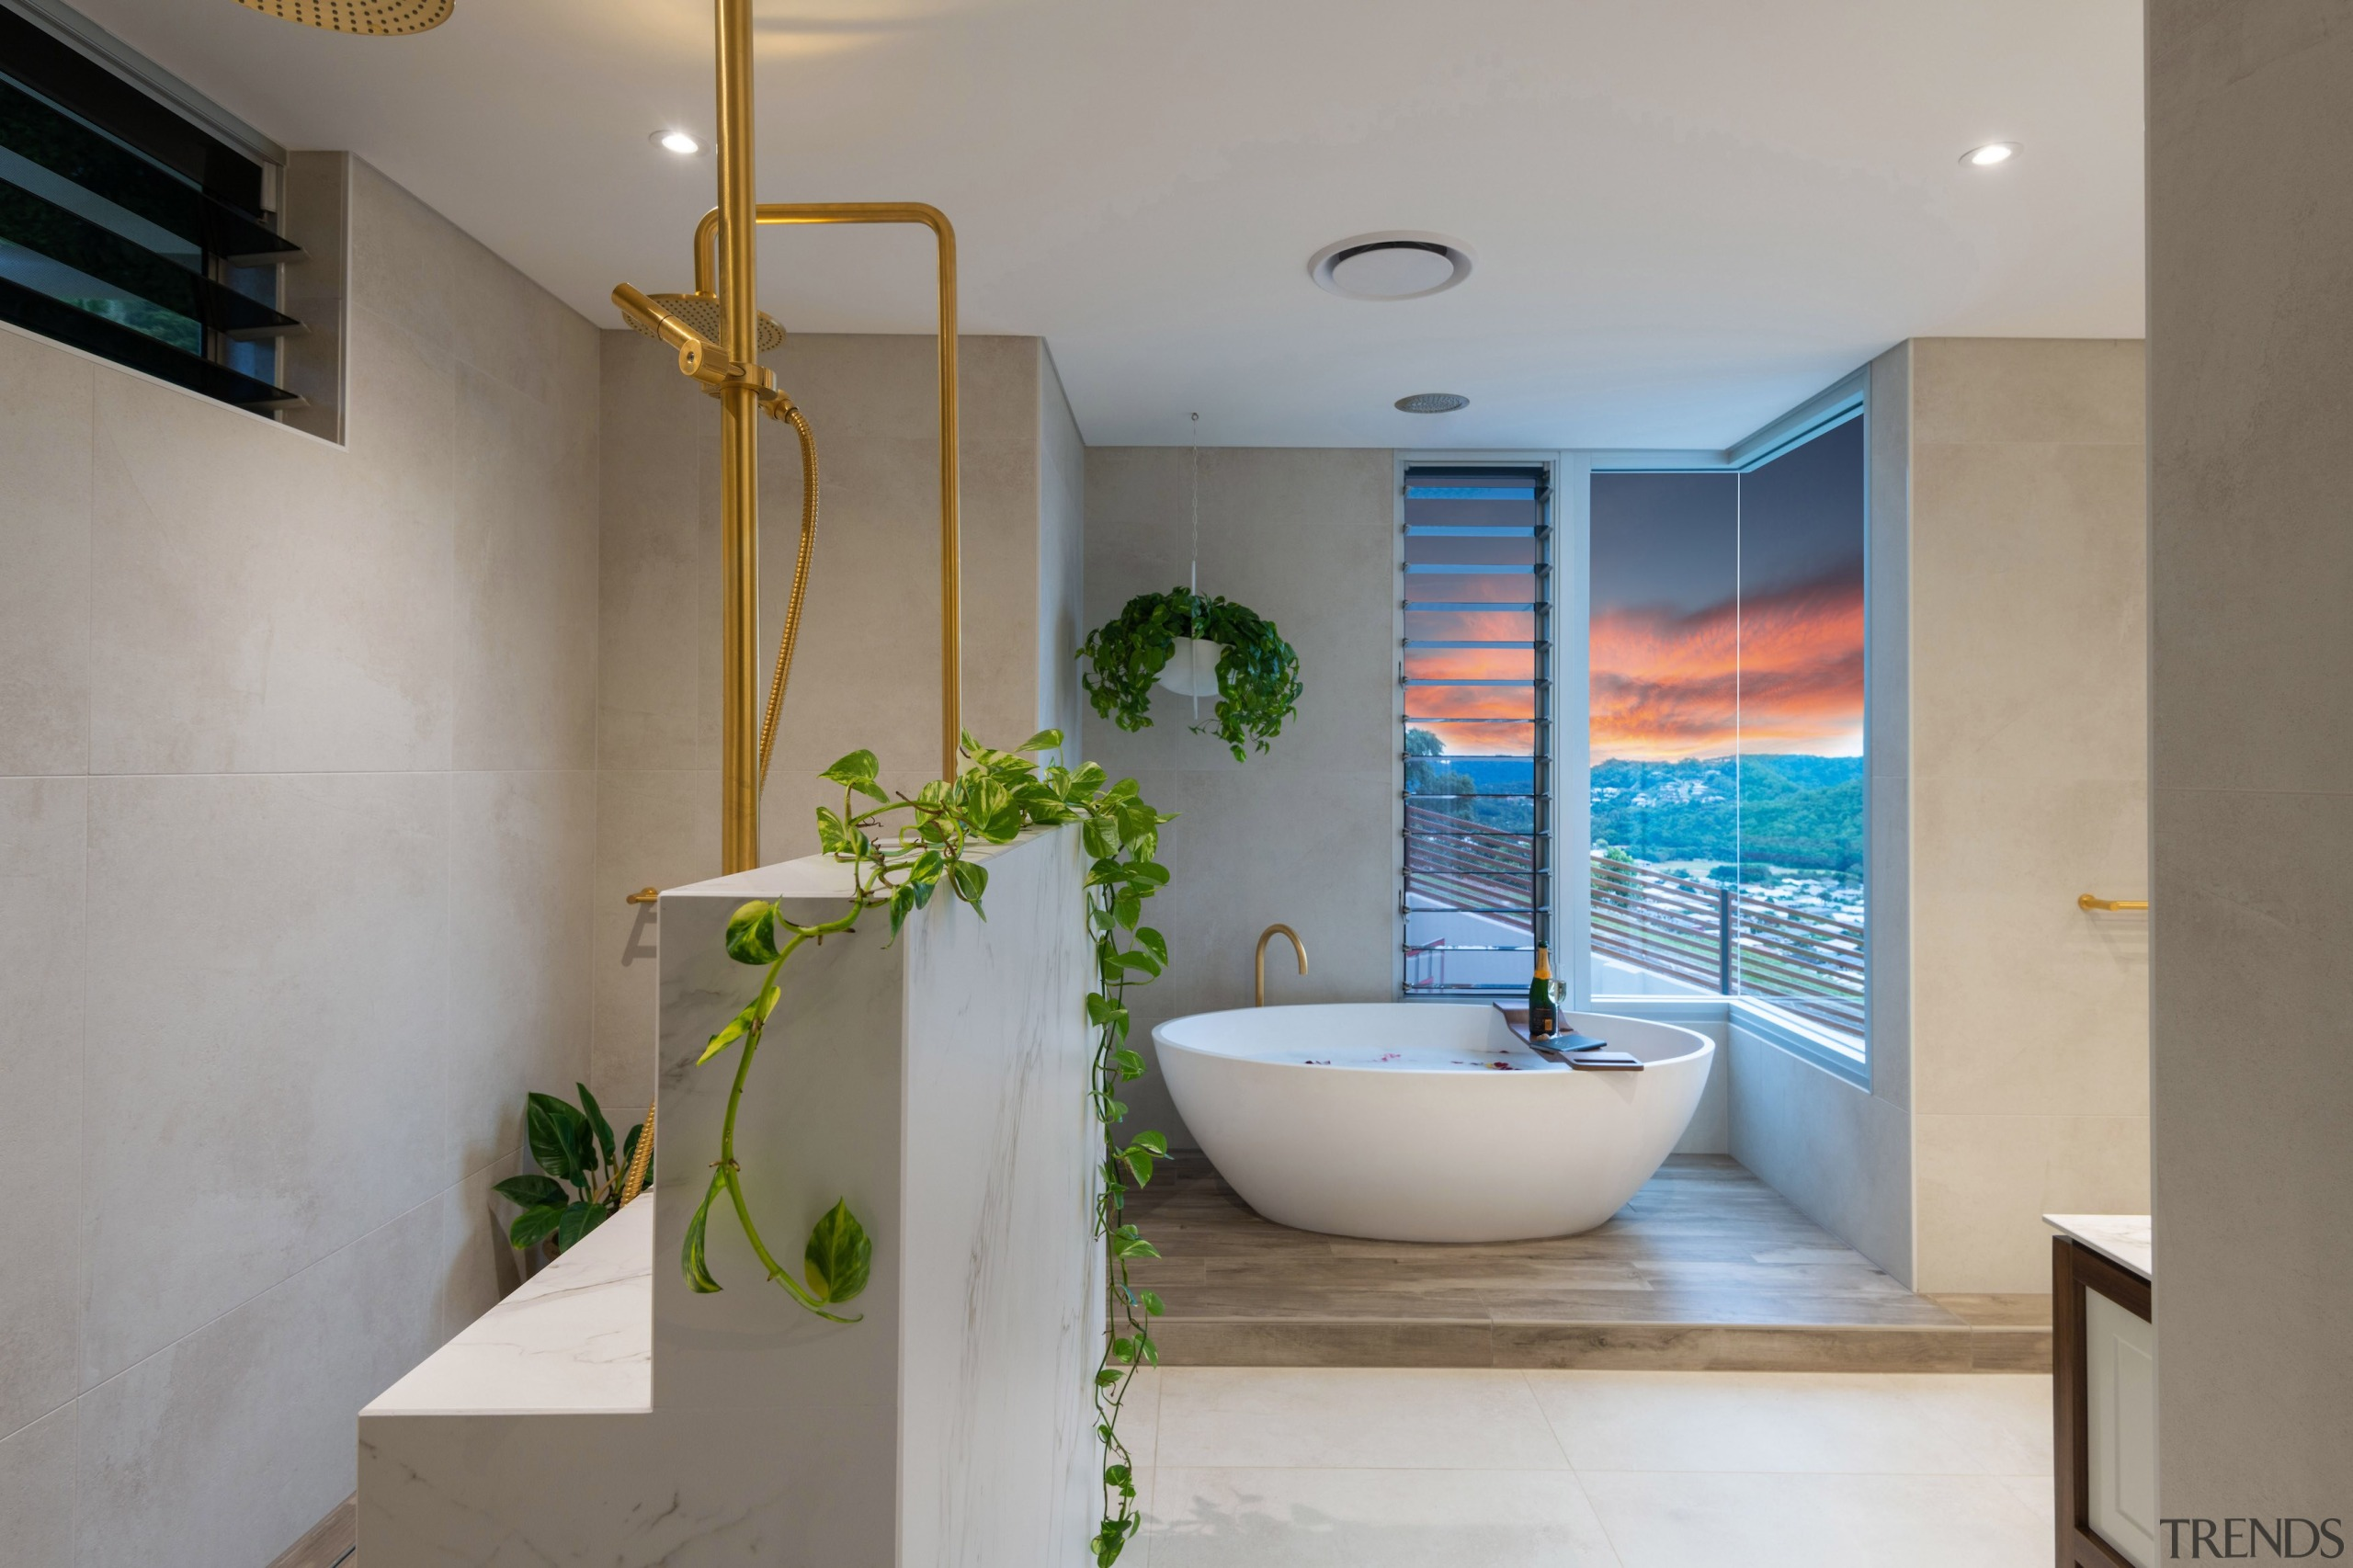 A half wall in the shower area provide